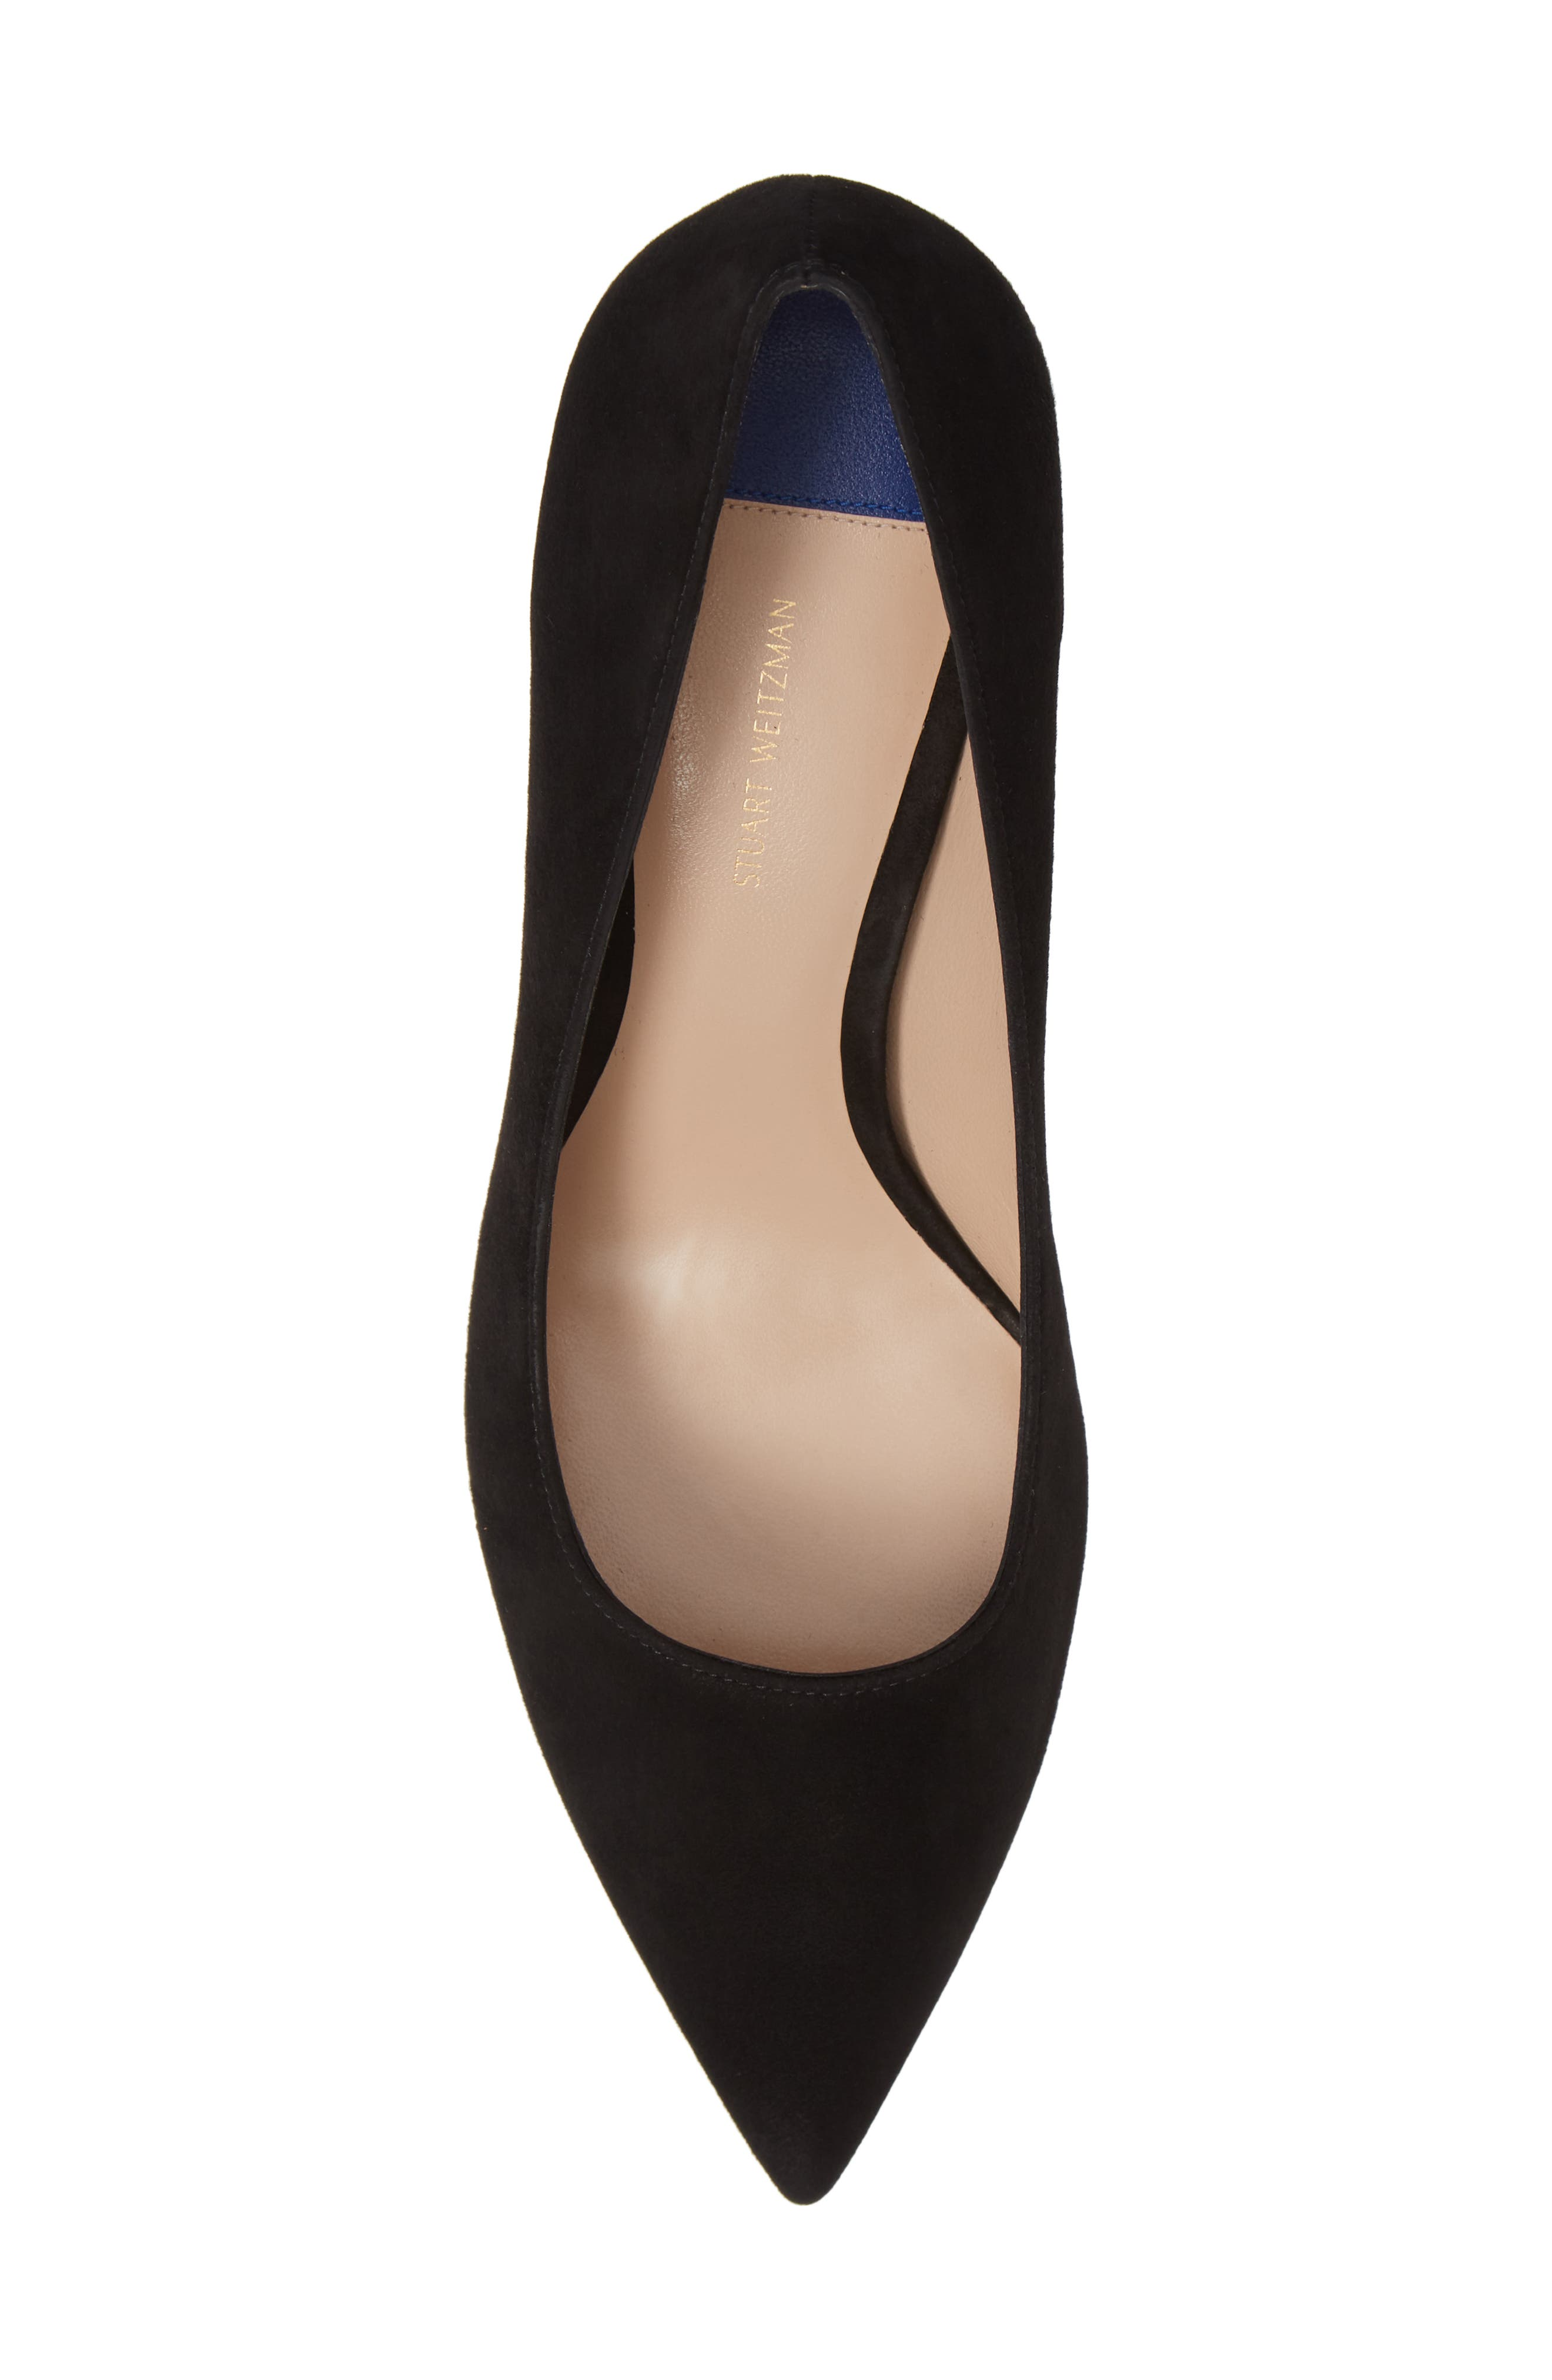 Tippi 70 Pointy Toe Pump,                             Alternate thumbnail 5, color,                             PITCH BLACK